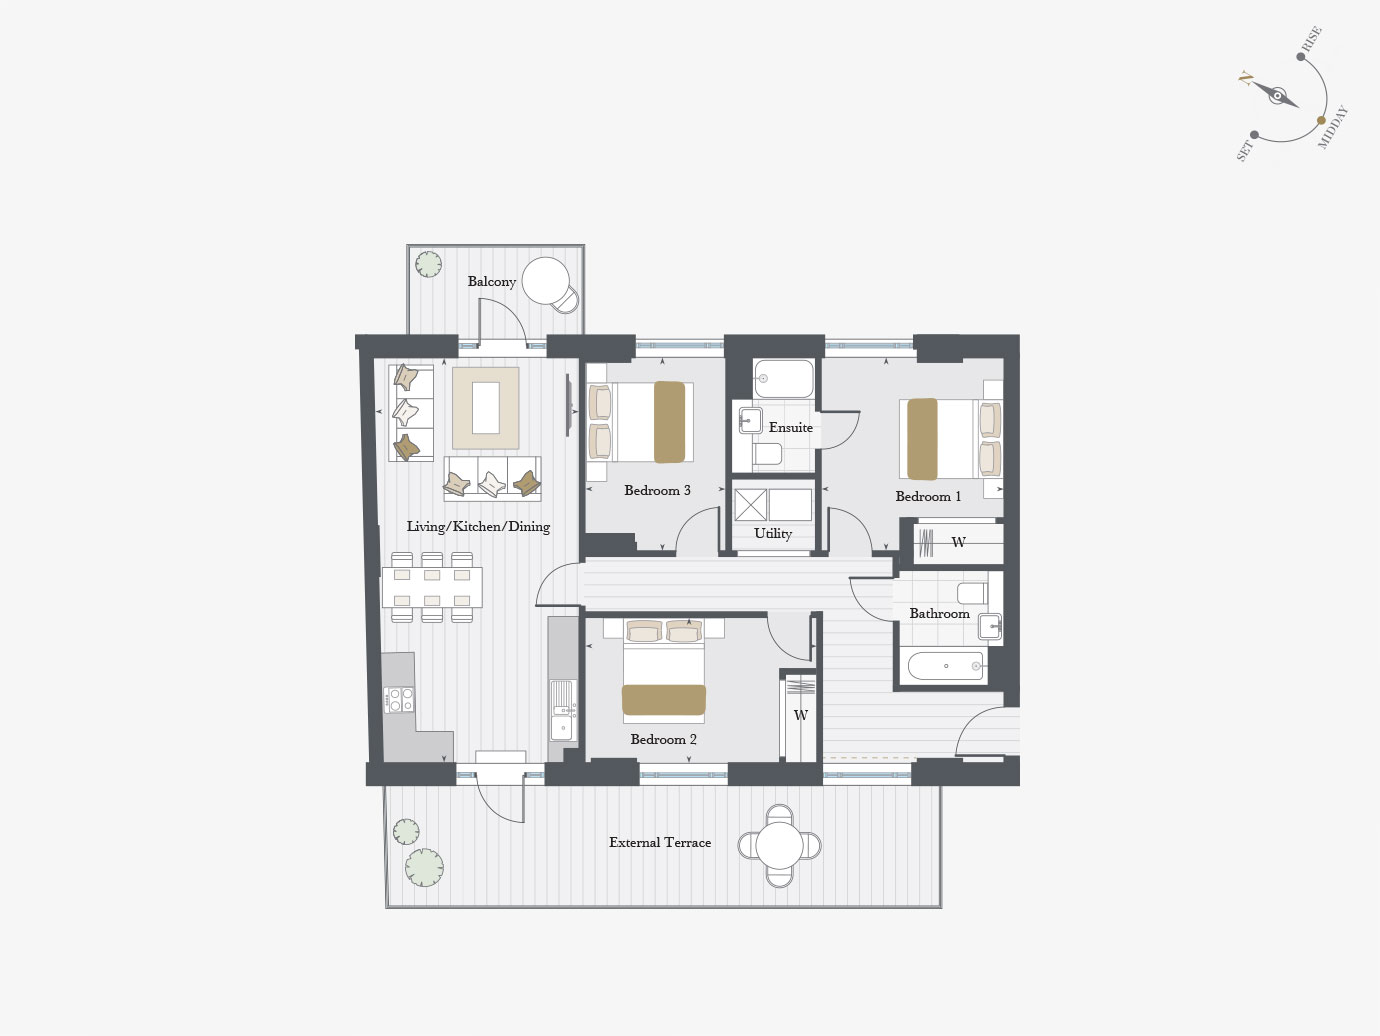 Floorplan for Apartment P1/01 at City Wharf, First